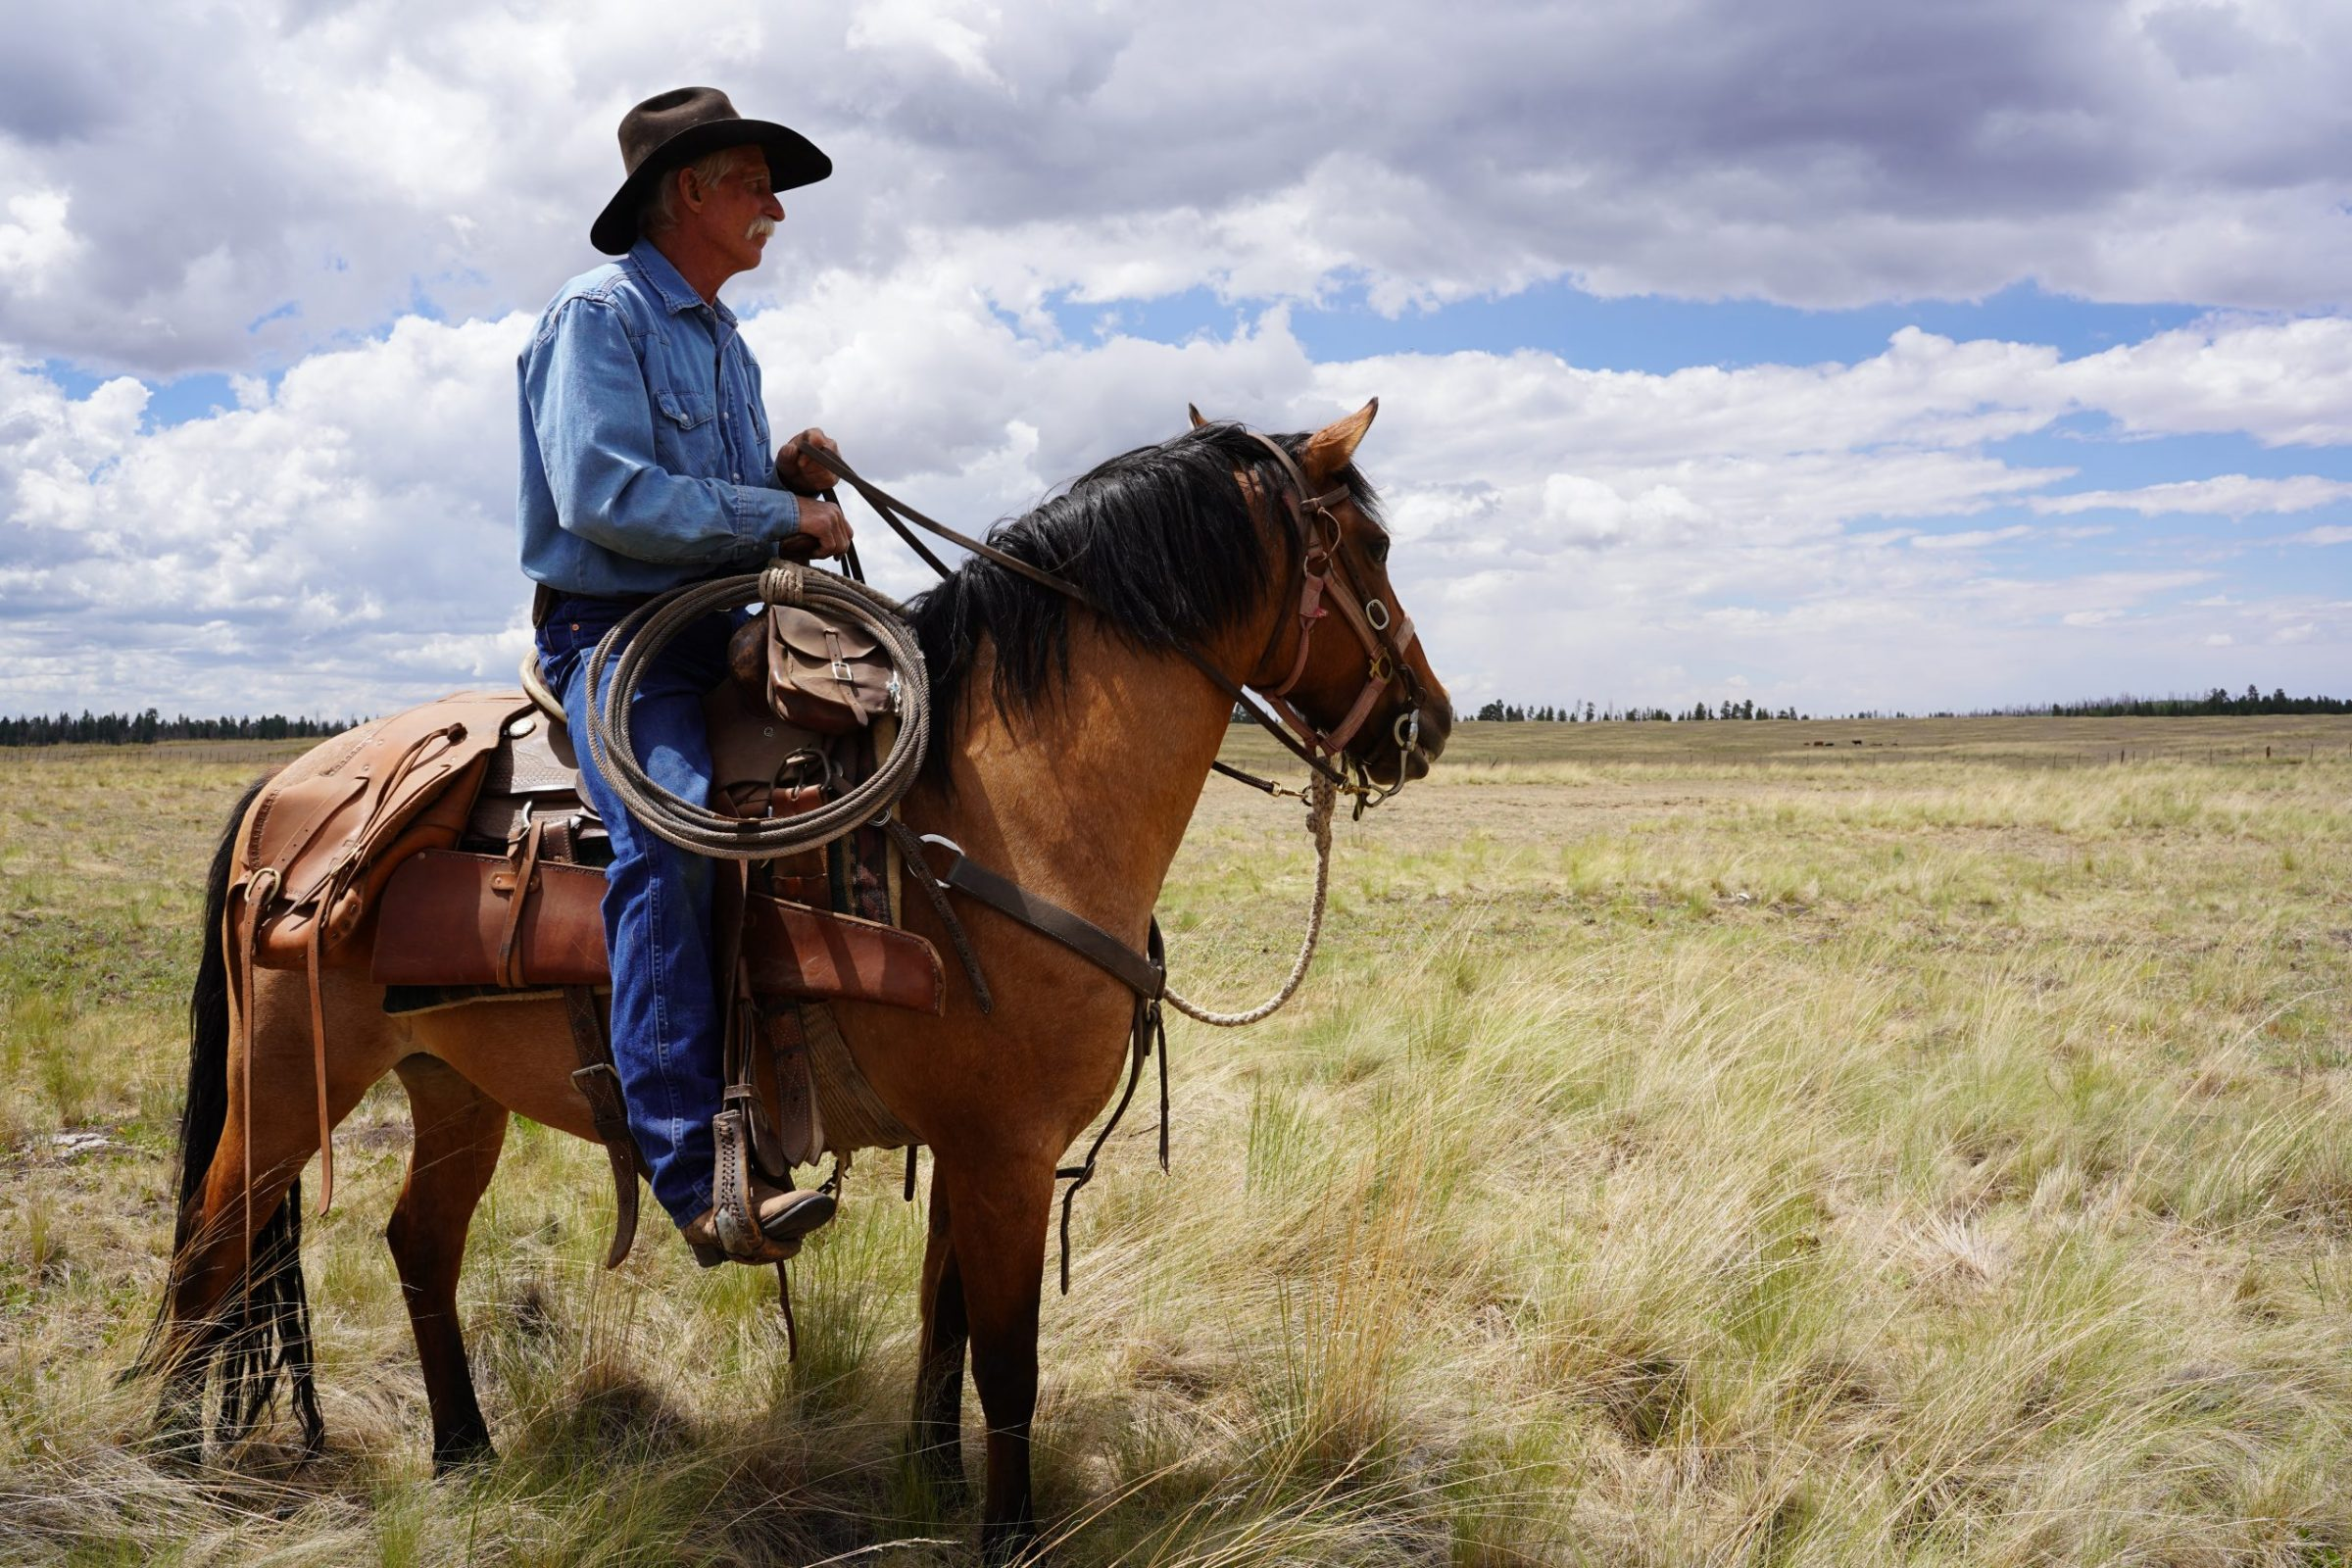 Range rider Jay Brad Miller surveys a cattle pasture in southeastern Arizona in July 2020. As Mexican wolf numbers have grown, ranchers have employed scouts like Miller to keep cattle and wolves apart. Photograph by April Reese